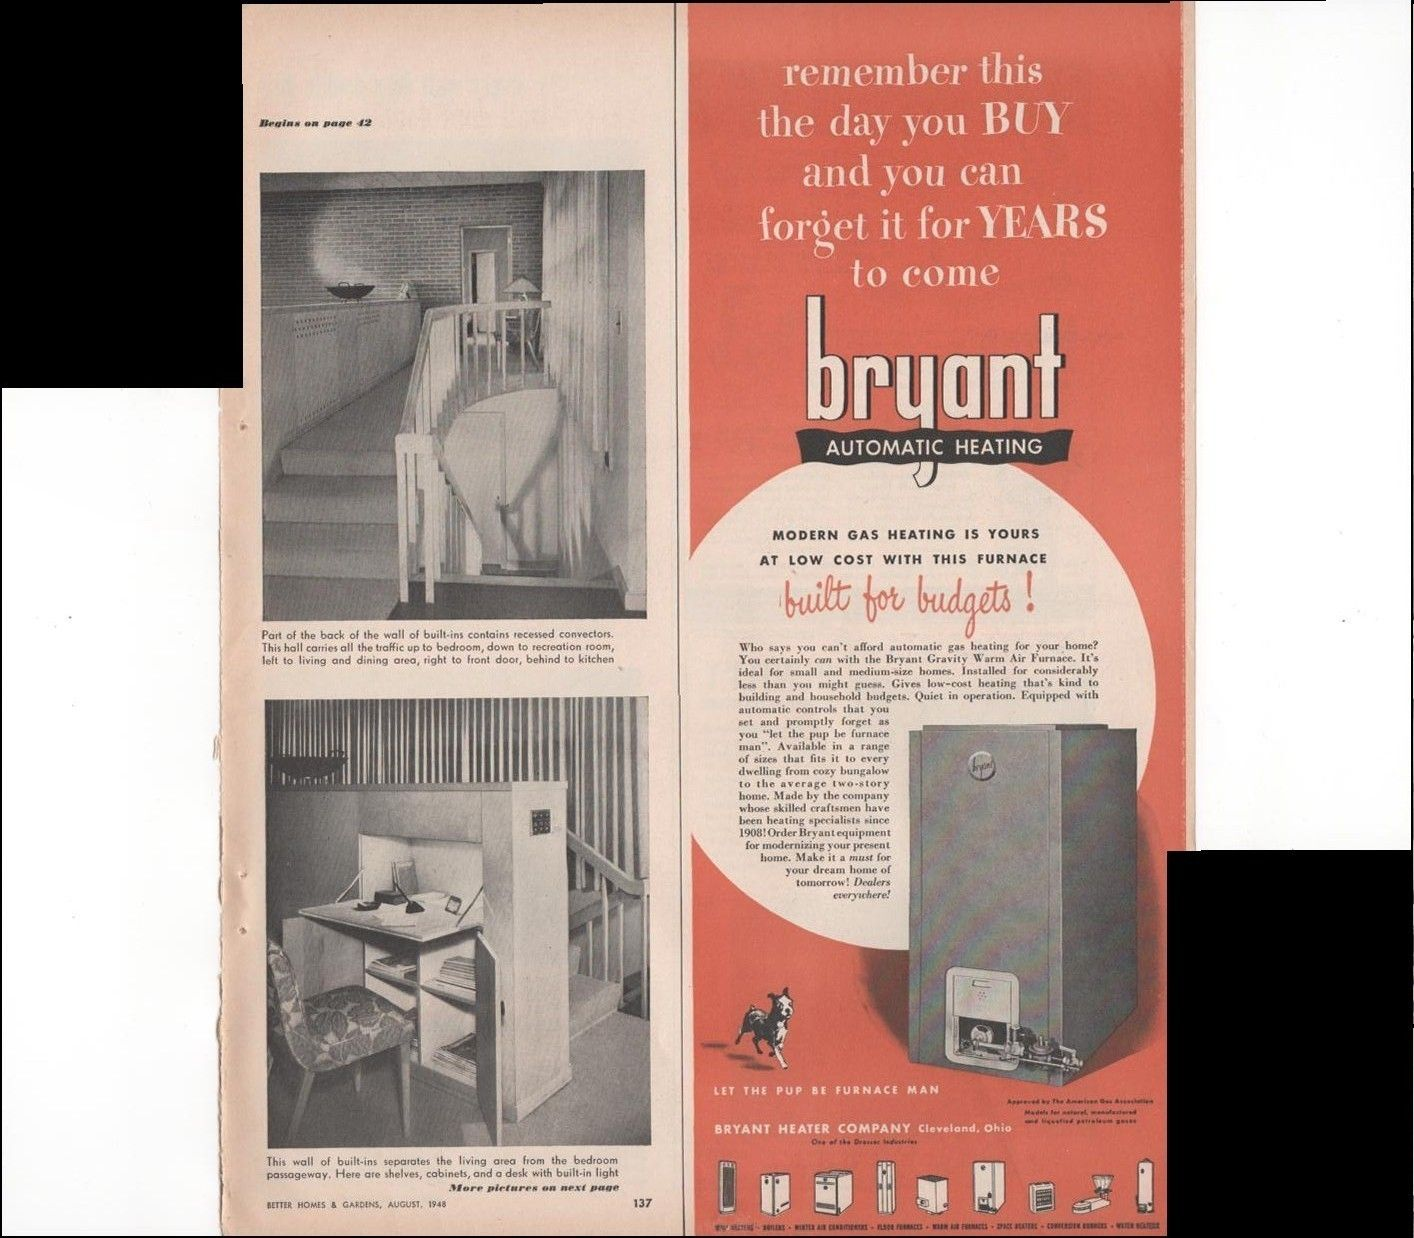 Bryant Automatic Heating Air Conditioner Home 1948 Vintage Antique Advertisement Gas Heating Heating Ventilation Air Conditioning Vintage Ads